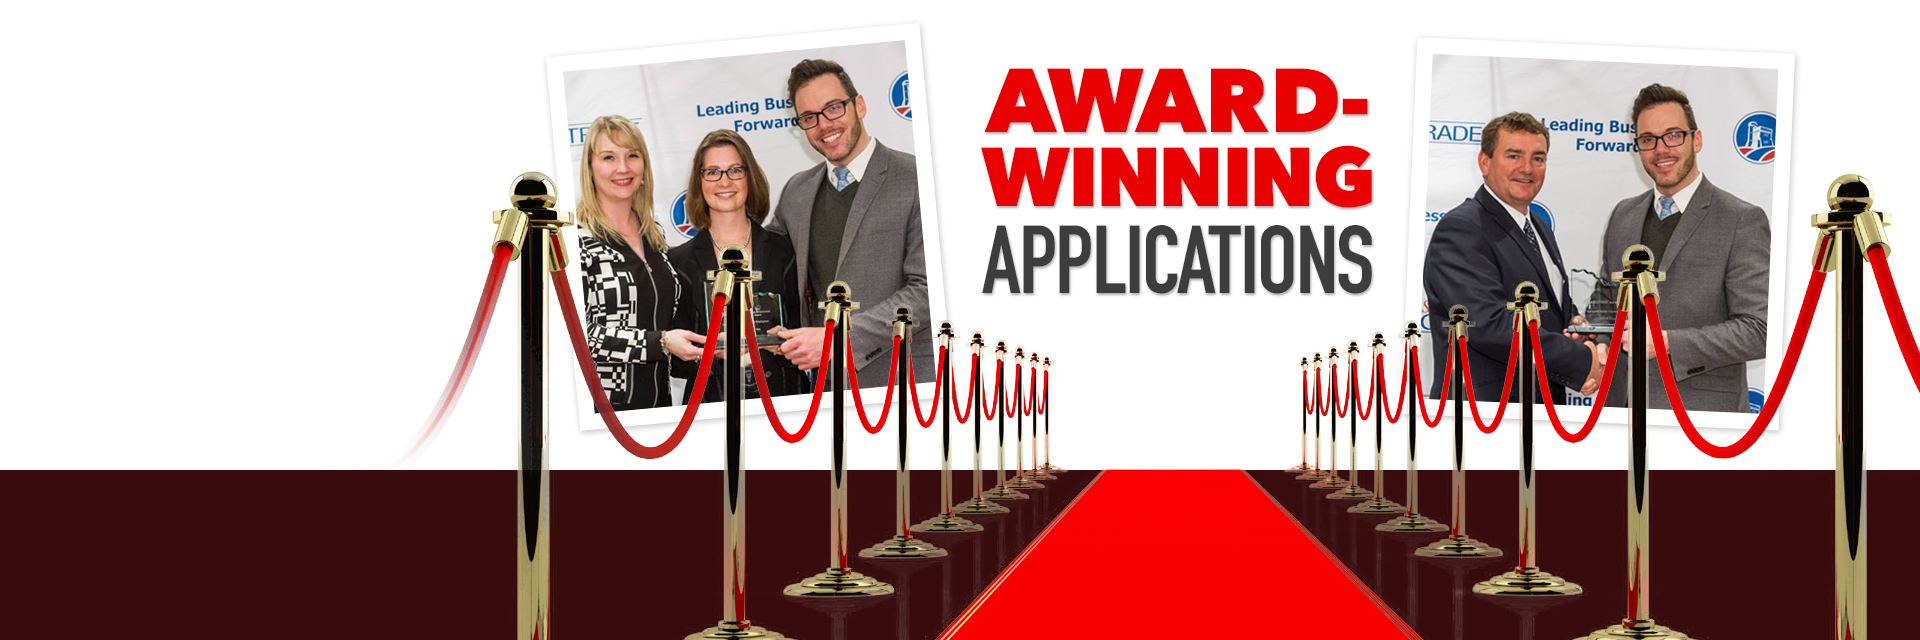 Award-Winning Applications: Dc Style